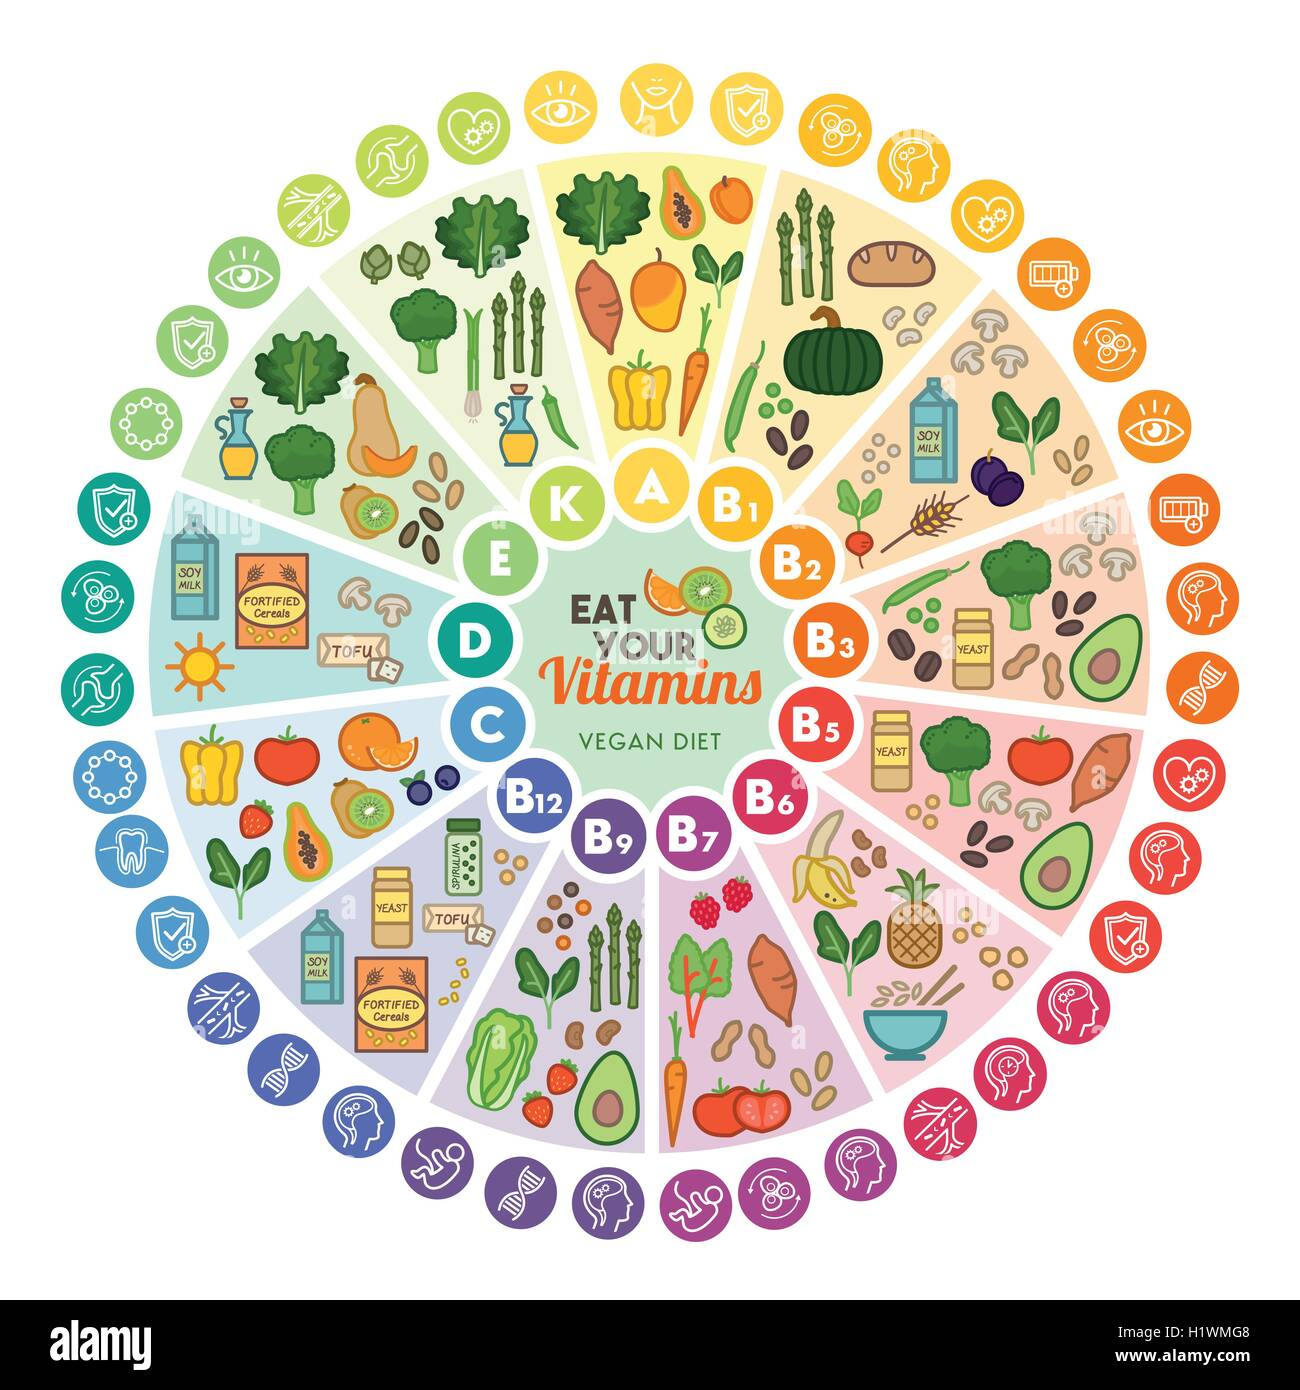 Vitamin vegan food sources and functions, rainbow wheel chart with food icons, healthy eating and healthcare concept - Stock Image